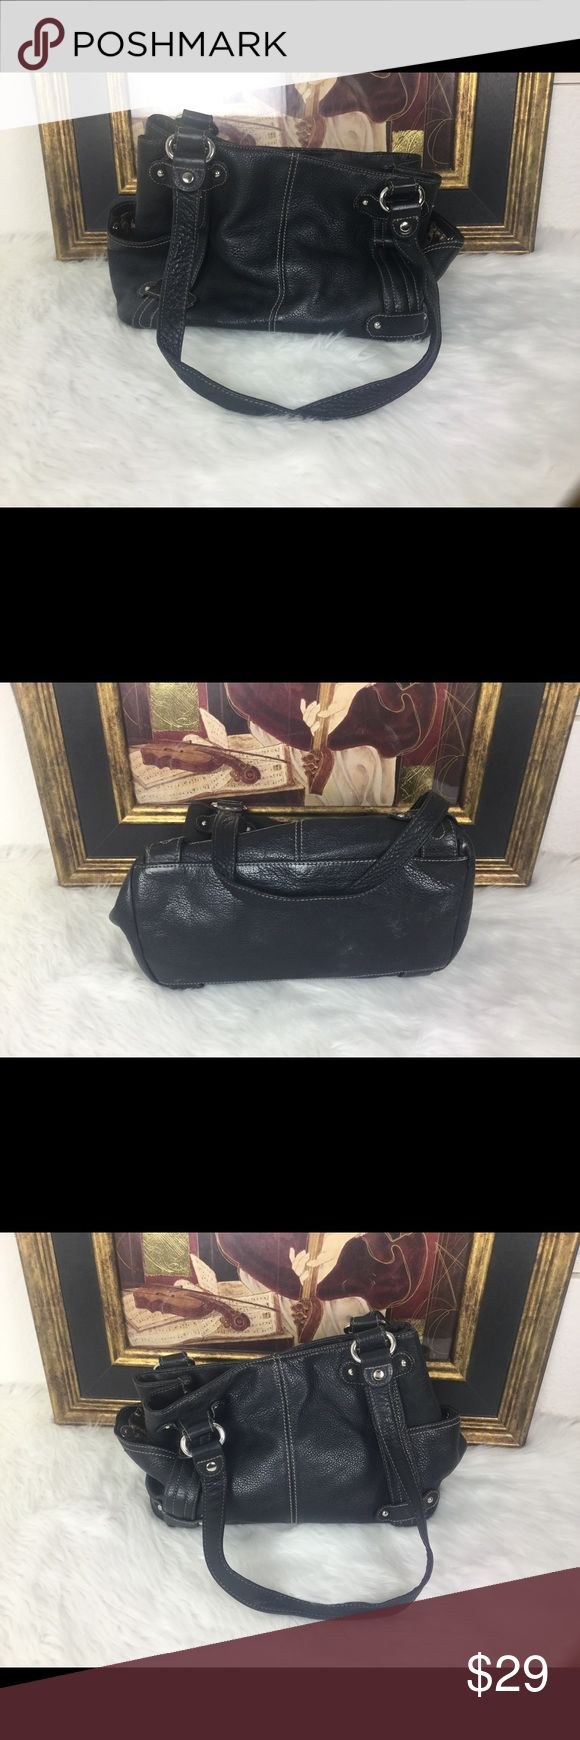 Tignanello Leather Handbag 🎉 Check out this great designer Tignanello Handbag  measures 12x9 Tignanello Bags Satchels